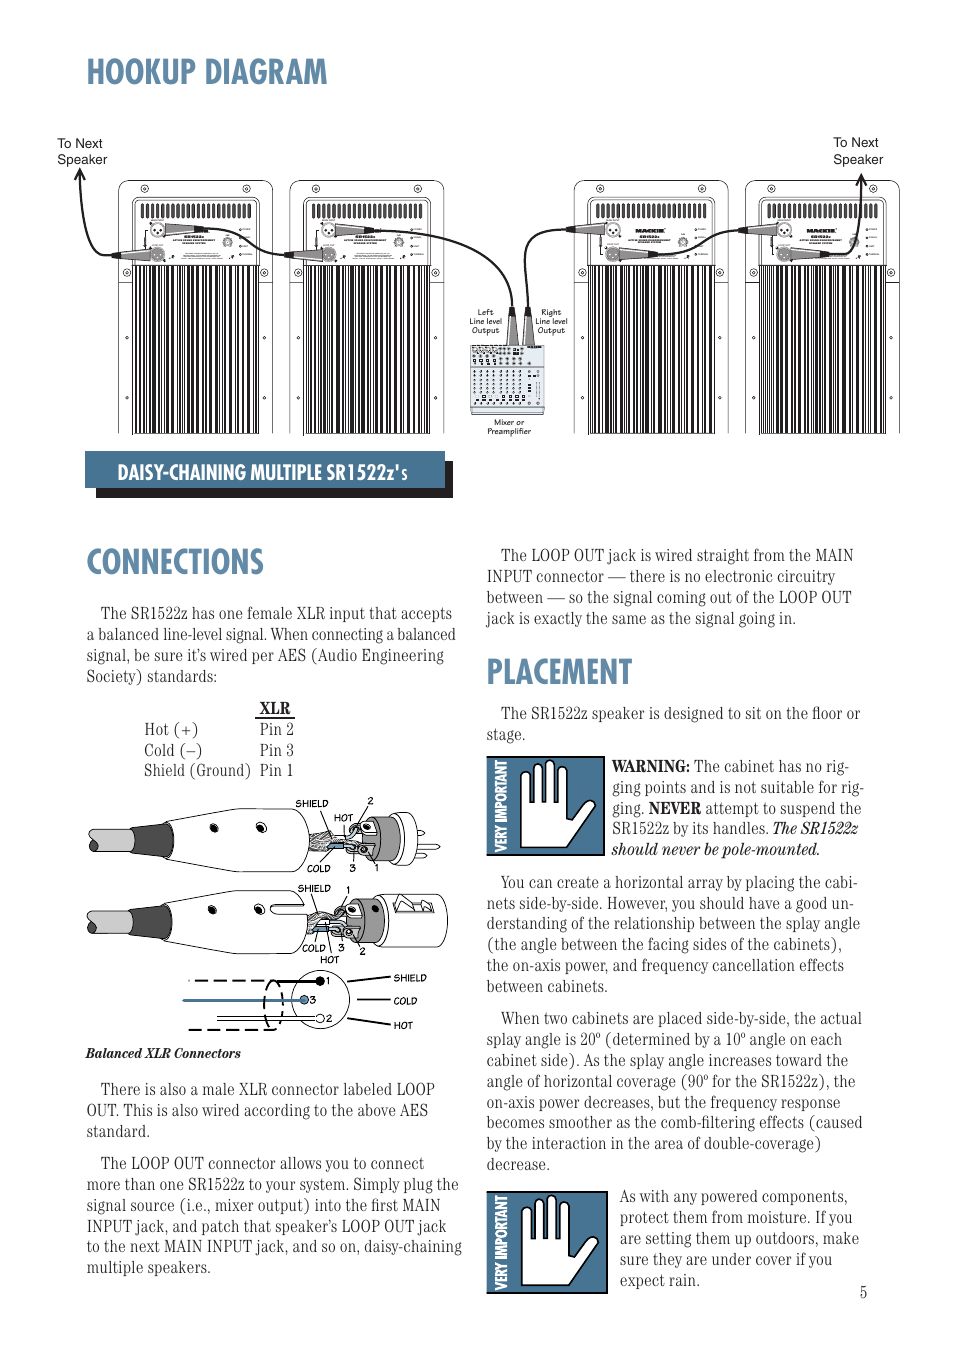 Daisy Chain Wiring Diagram Audio Schematics Hookup Connections Placement Mackie Sr1522z User Manual Home Outlet